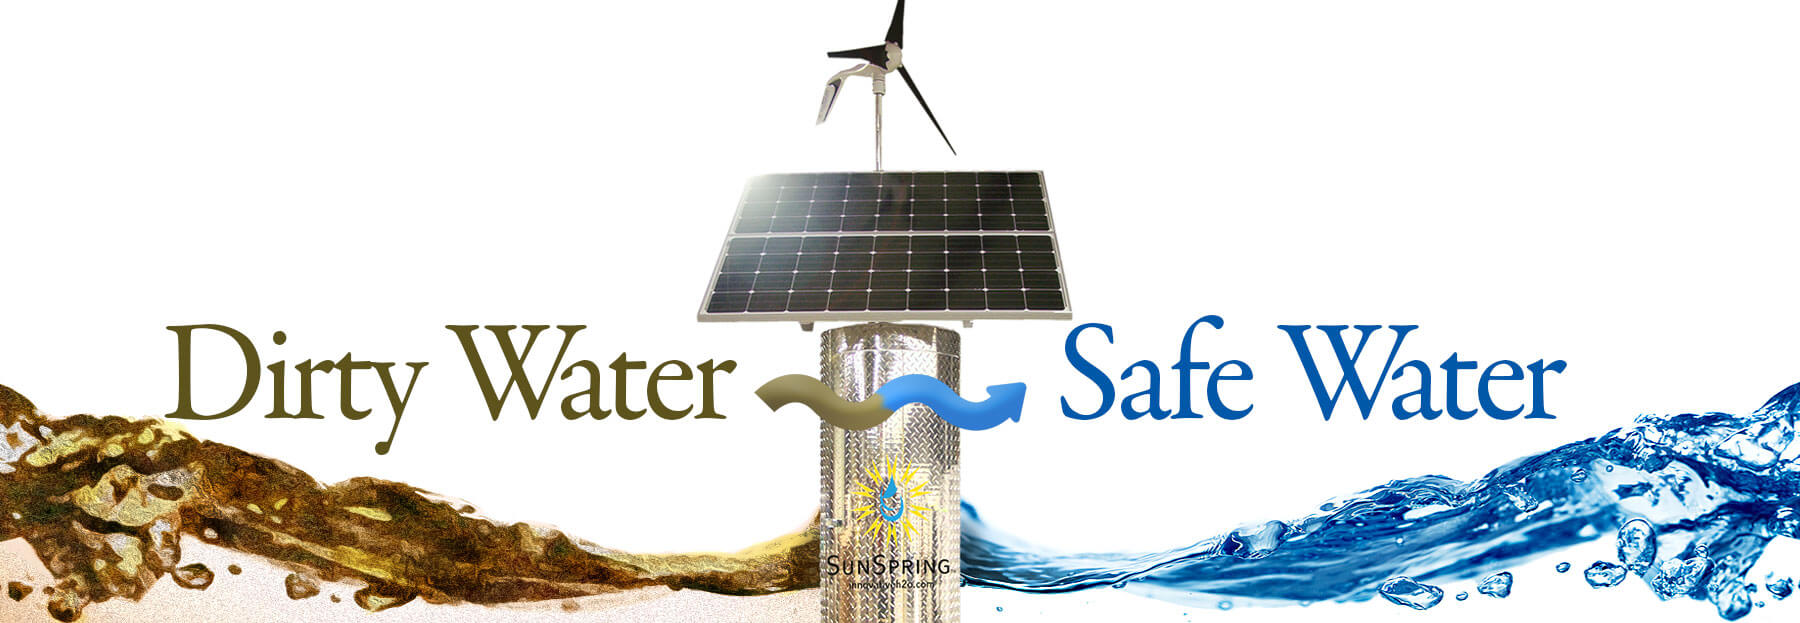 Home Innovative Water Technologies